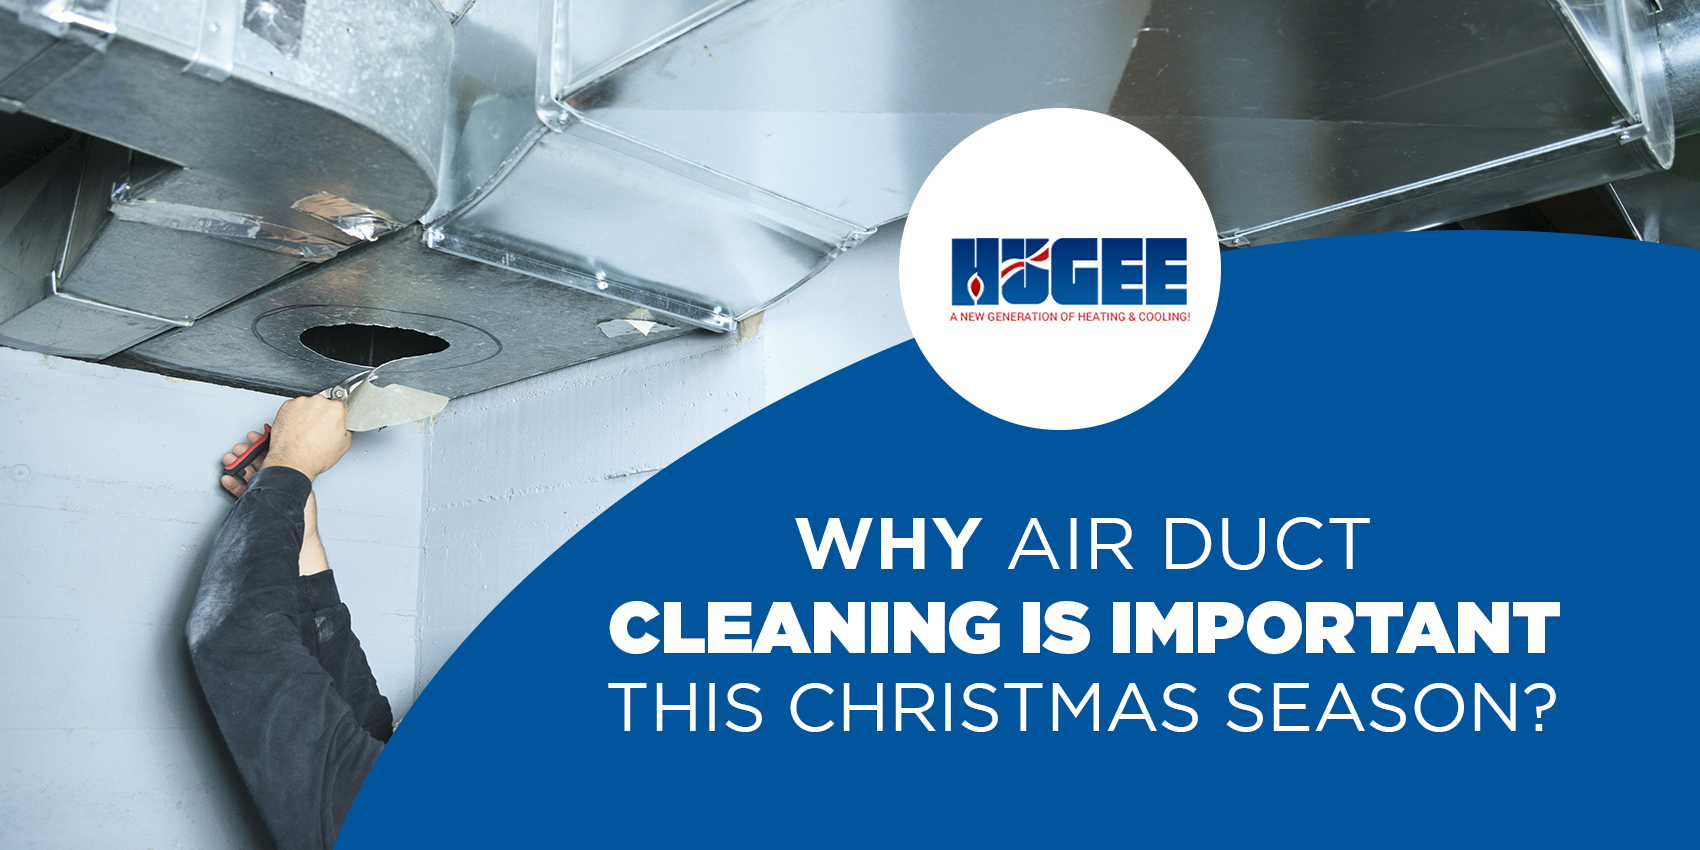 WhyAirDuctCleaning_Hugee